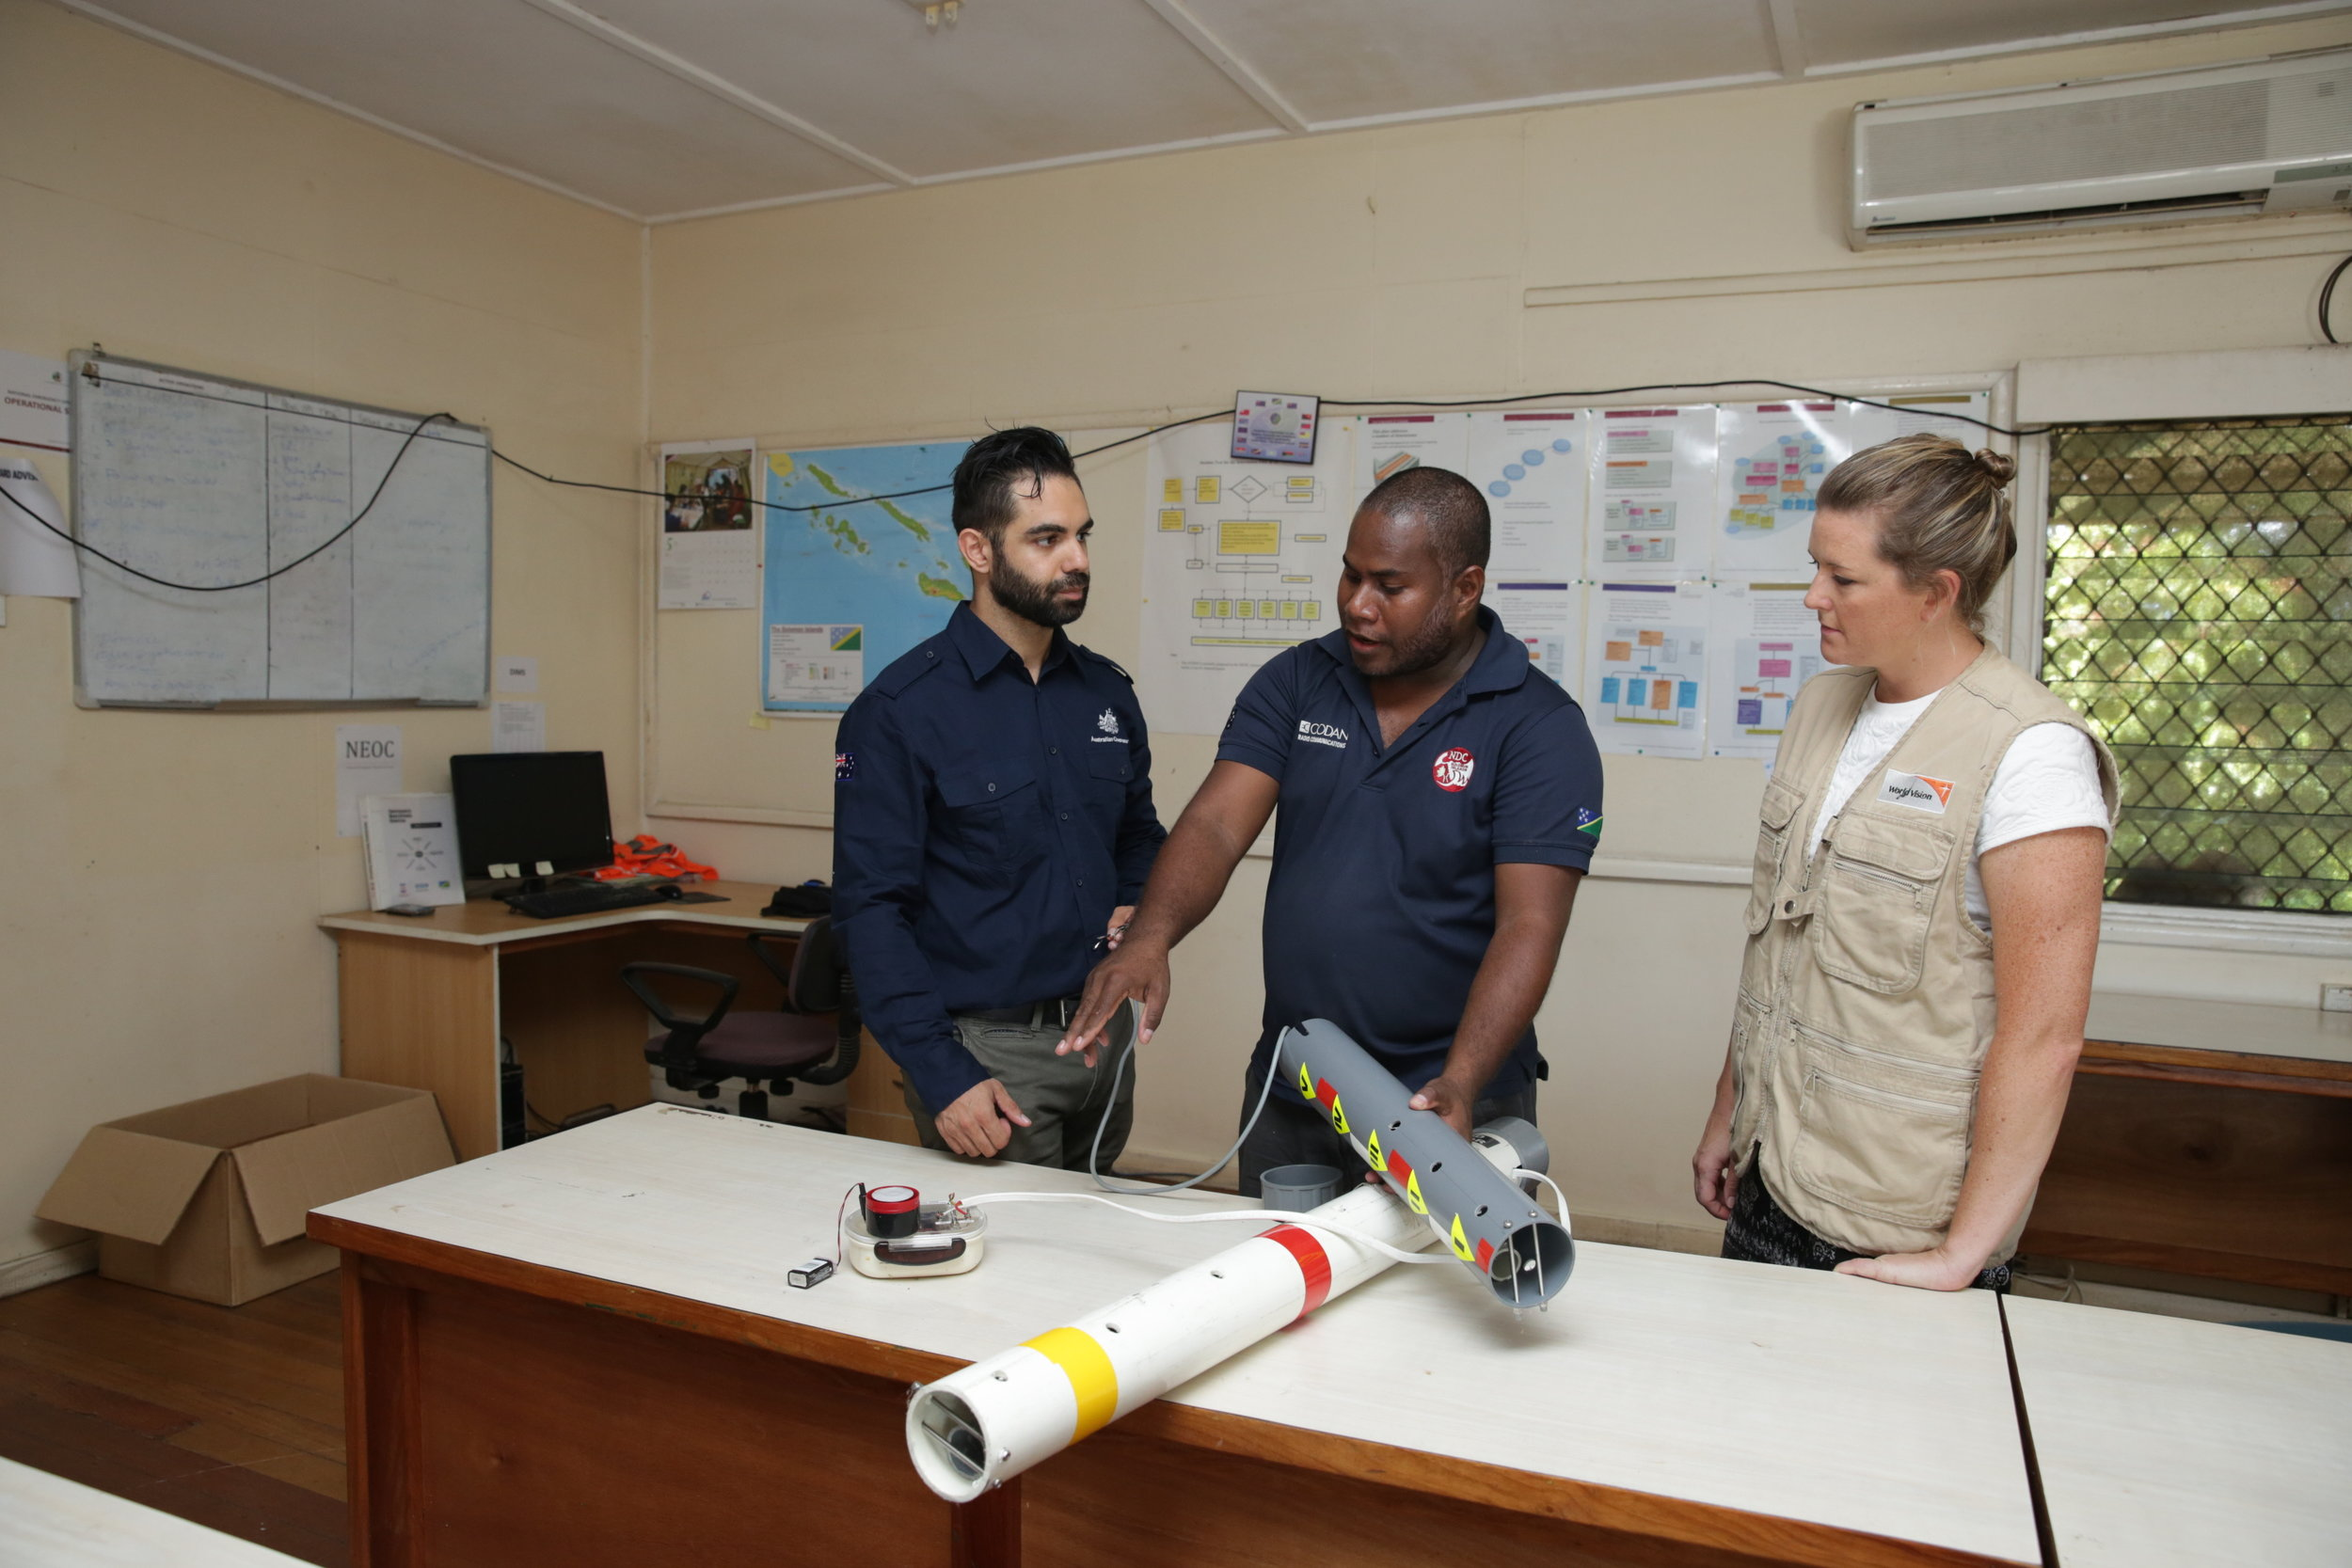 Photo caption: George Baragamu, Deputy Director of the National Disaster Management Office (NDMO), discusses flood gauges with representatives from the Australian Government and World Vision. Photo credit: ©World Vision Australia.